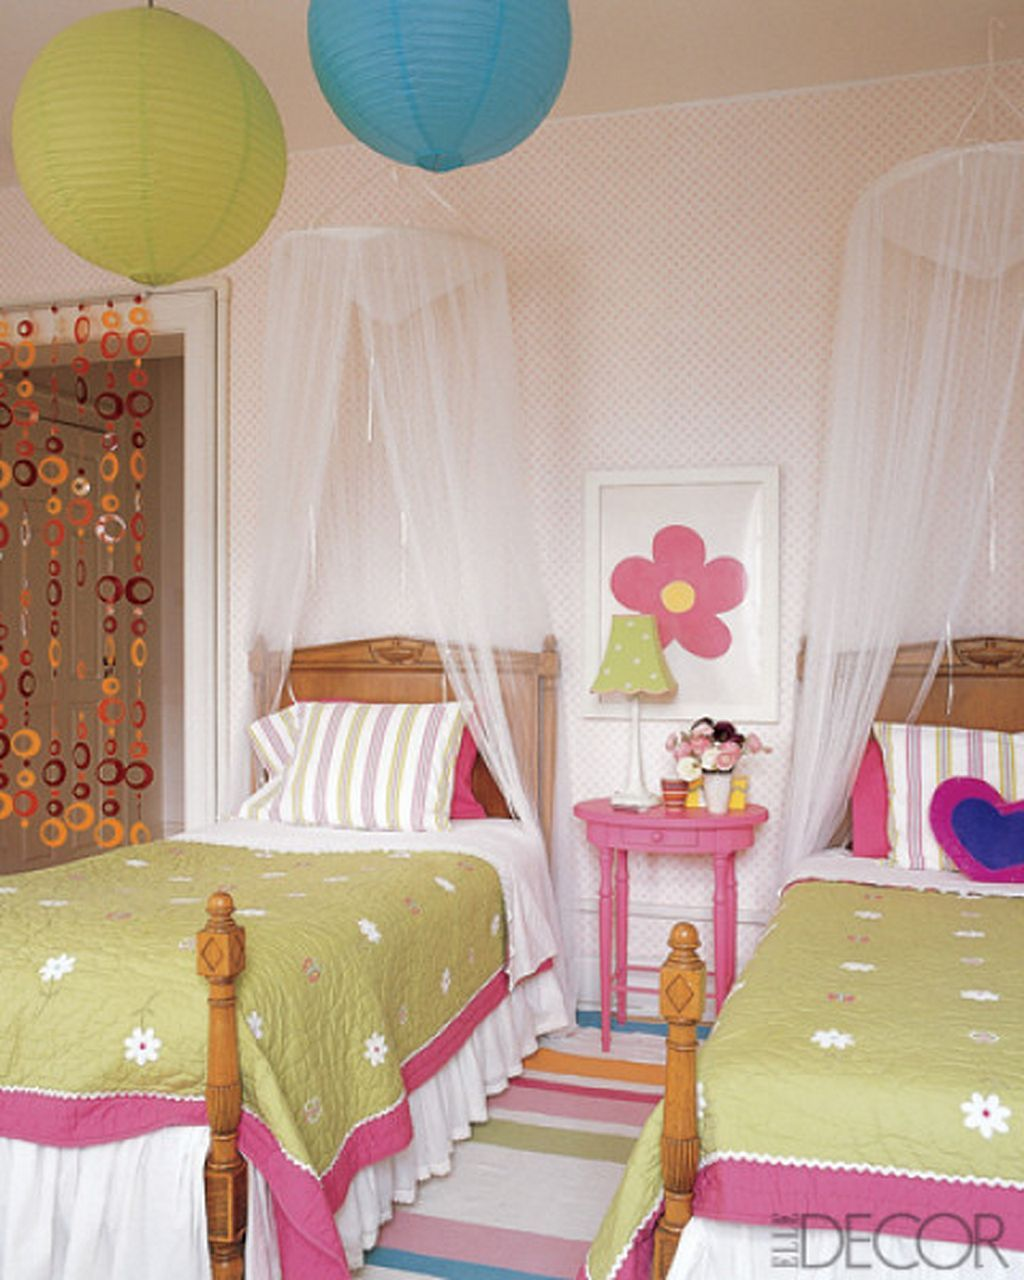 Kids room design for two girls - Room Two Girls Bedroom Ideas